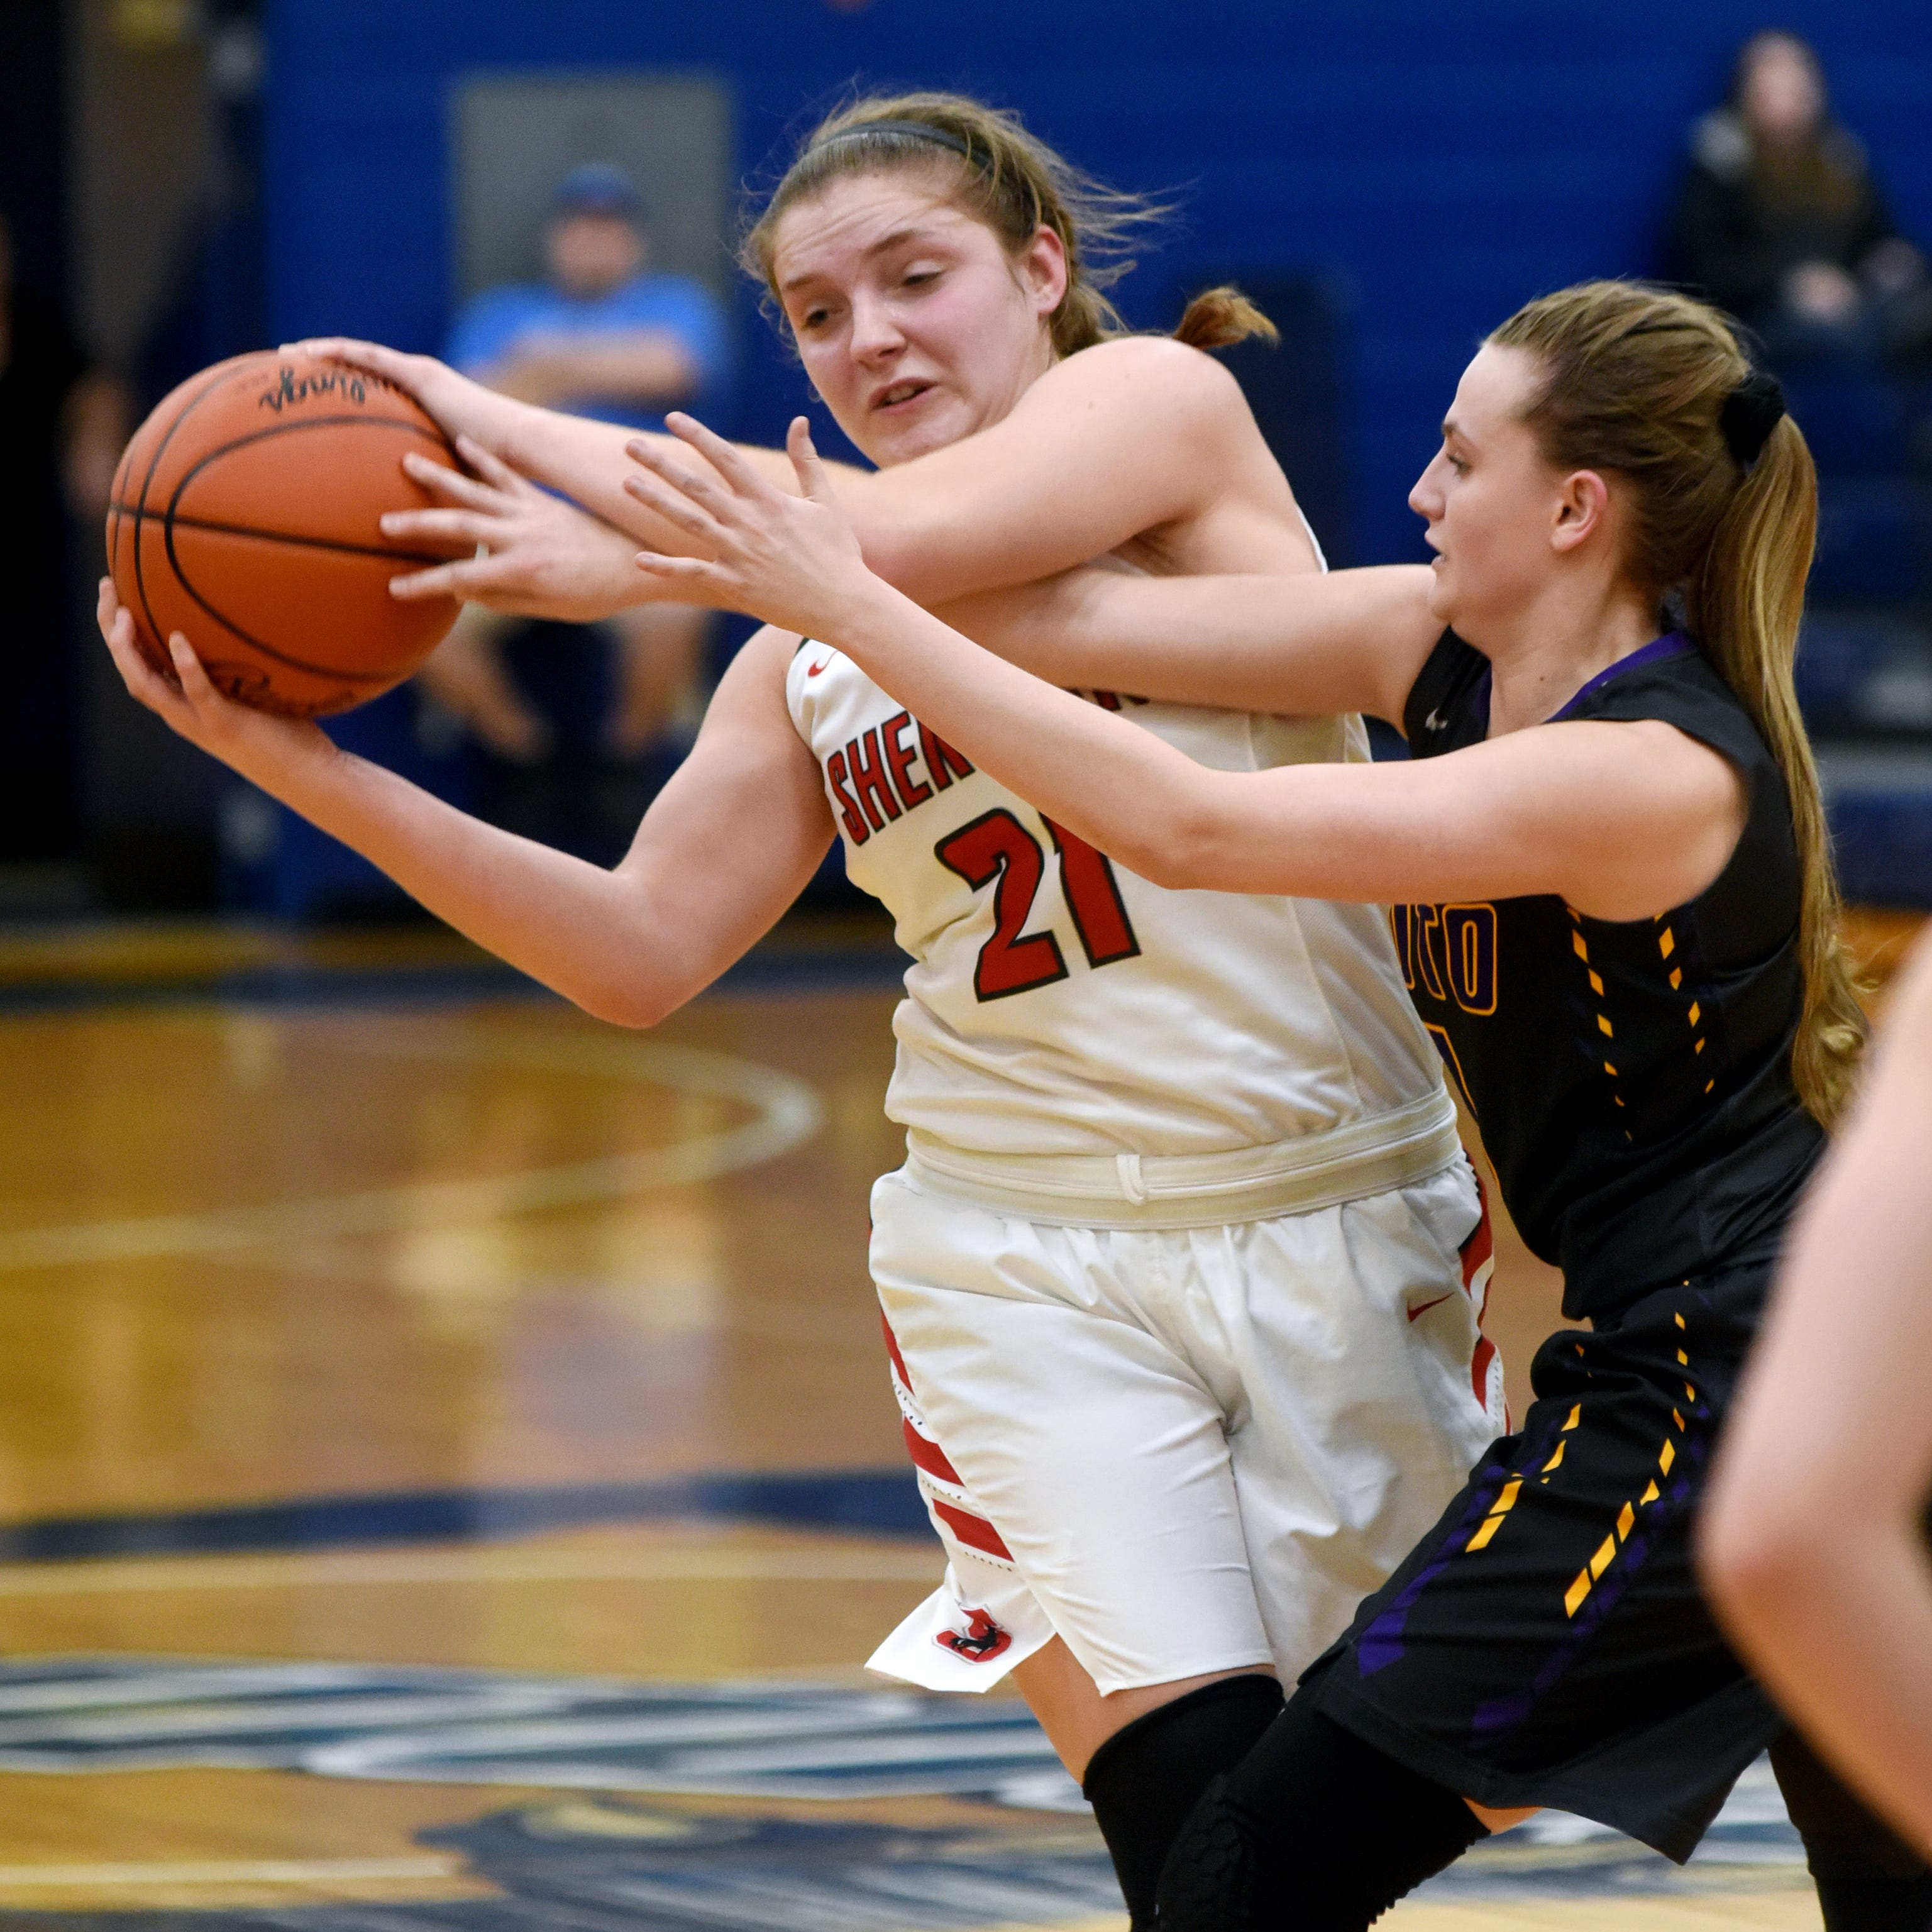 Getting defensive: Sheridan nips Unioto in district semi